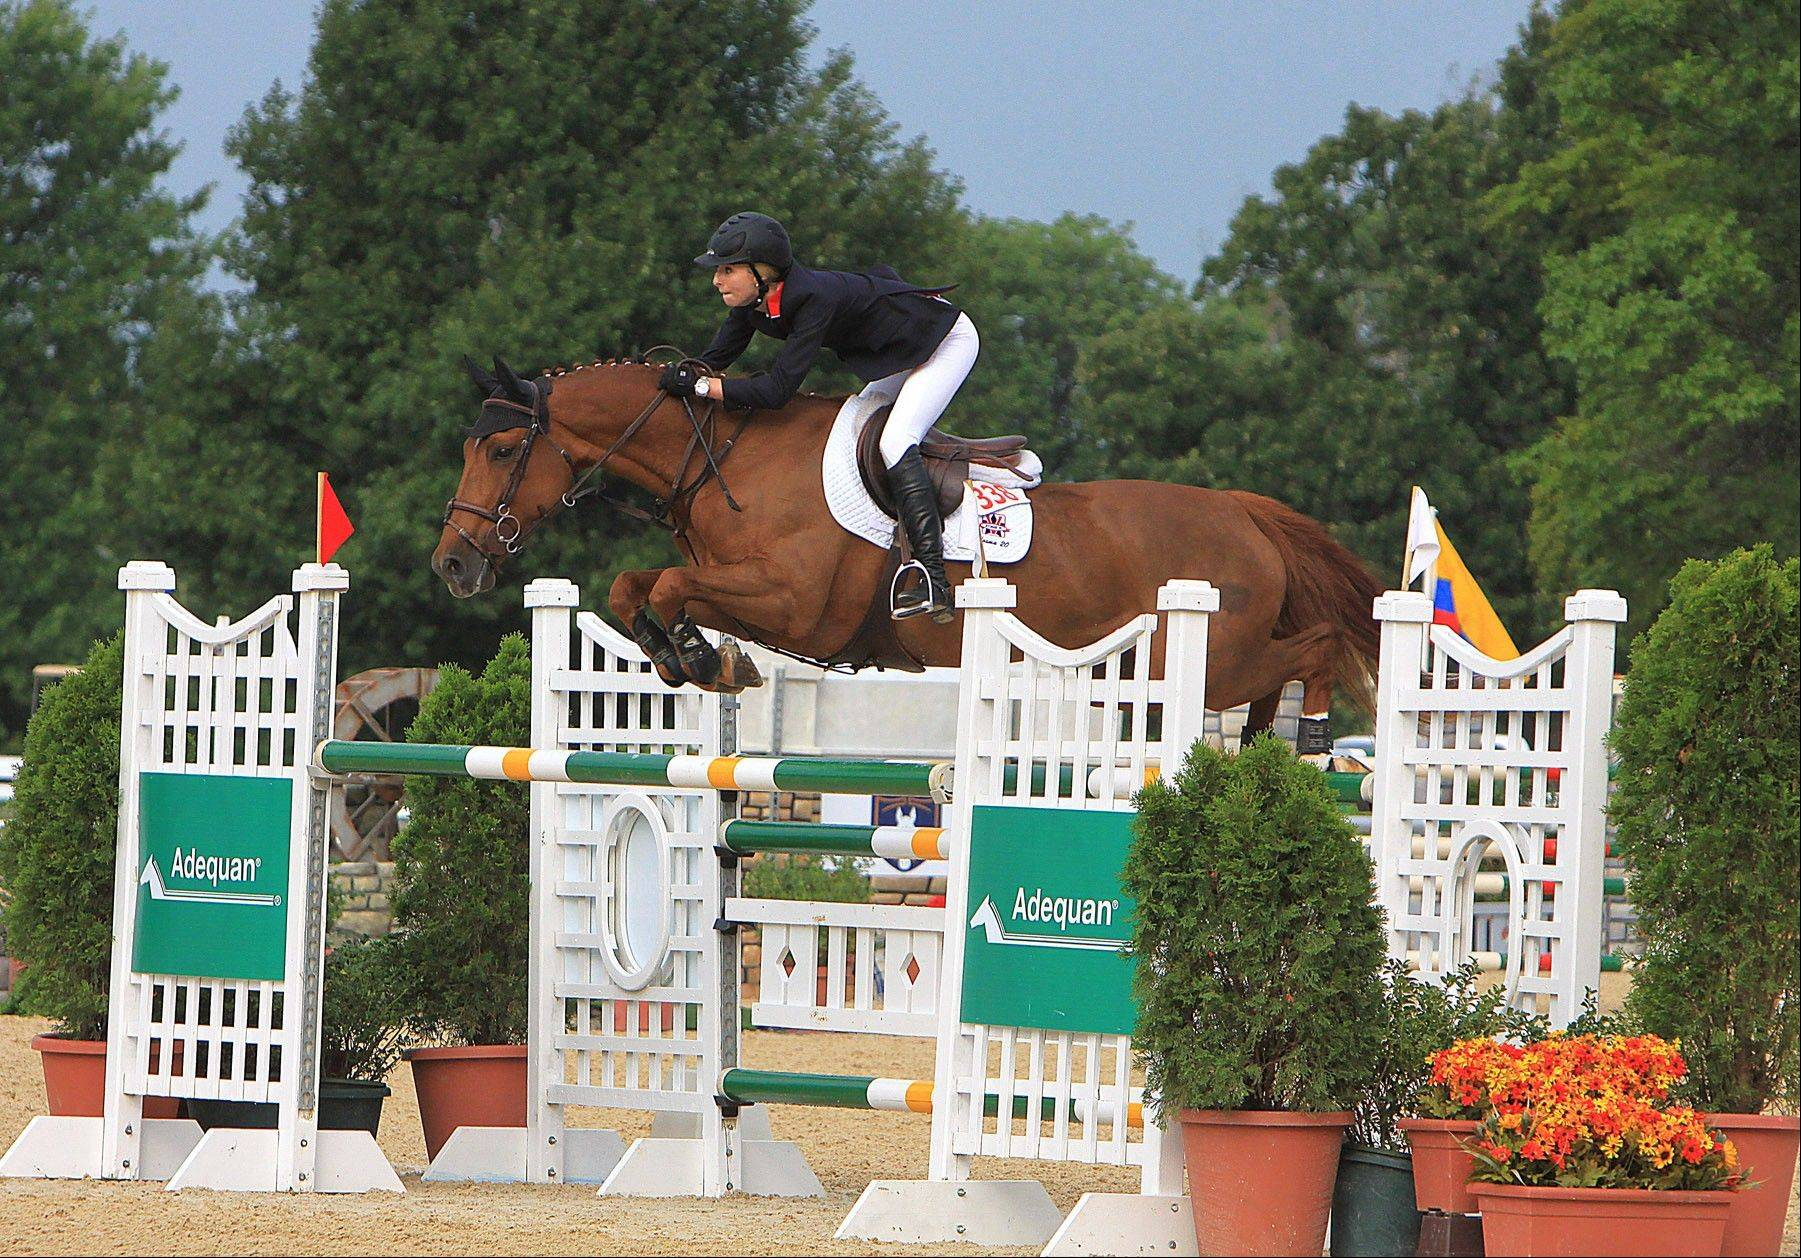 Abigail McArdle and Cosma 20 make a clean jump.